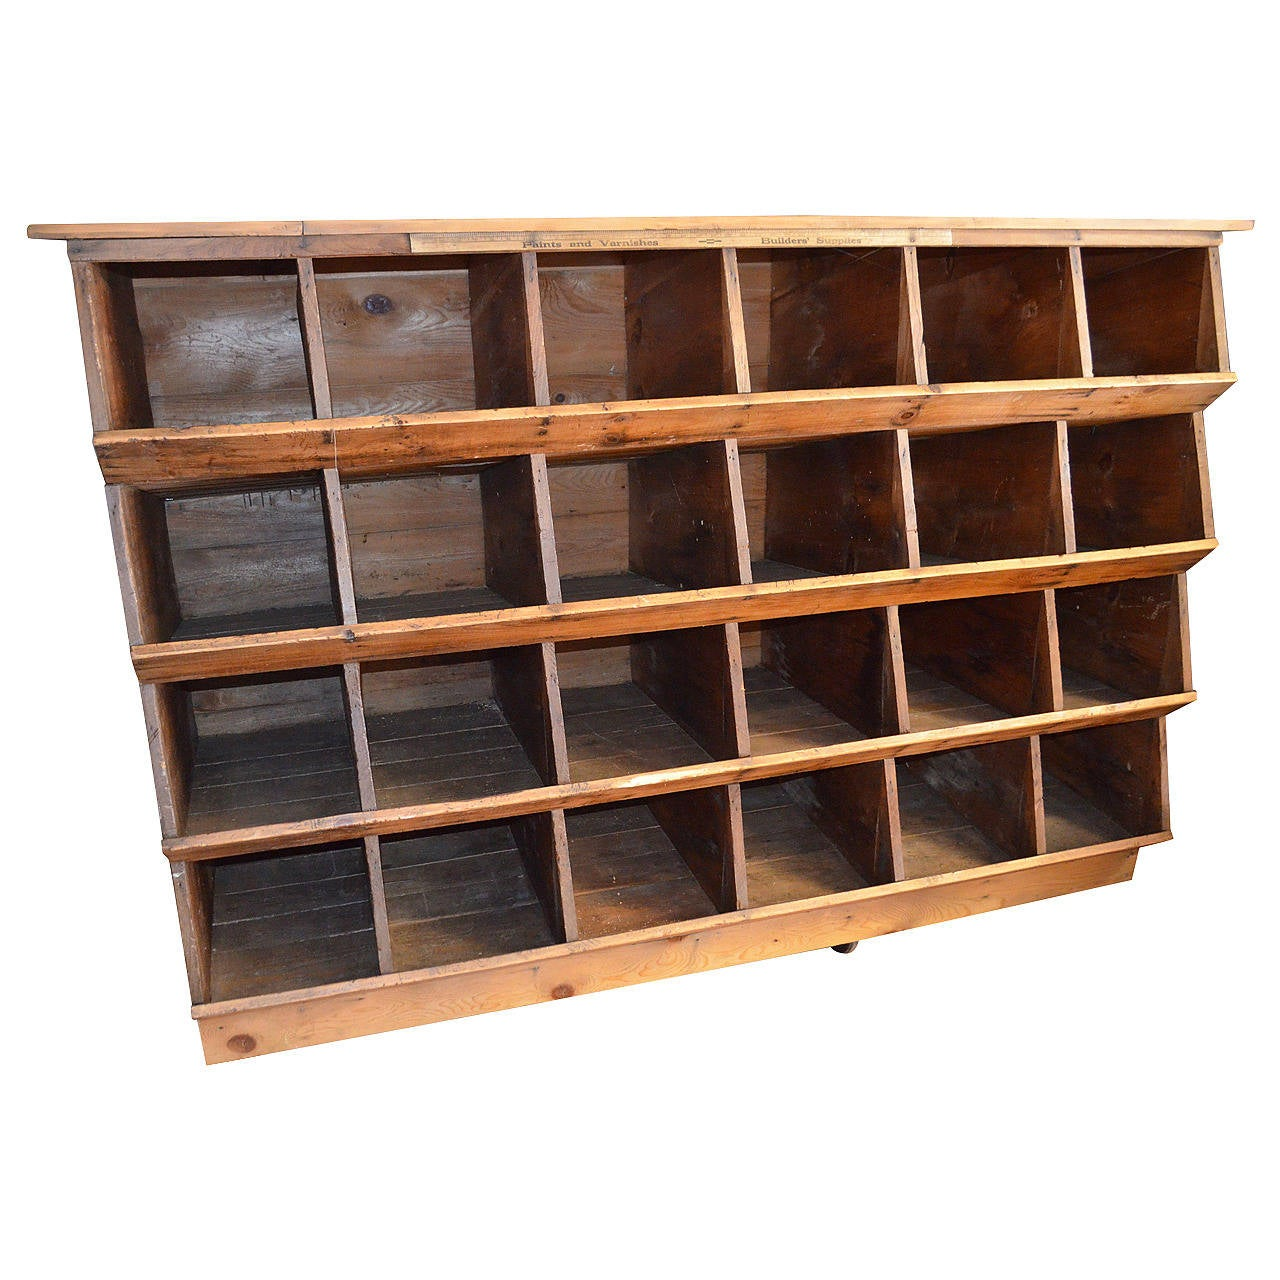 Storage Shelving Unit of Wood was Once Chicken Nesting Box at 1stdibs